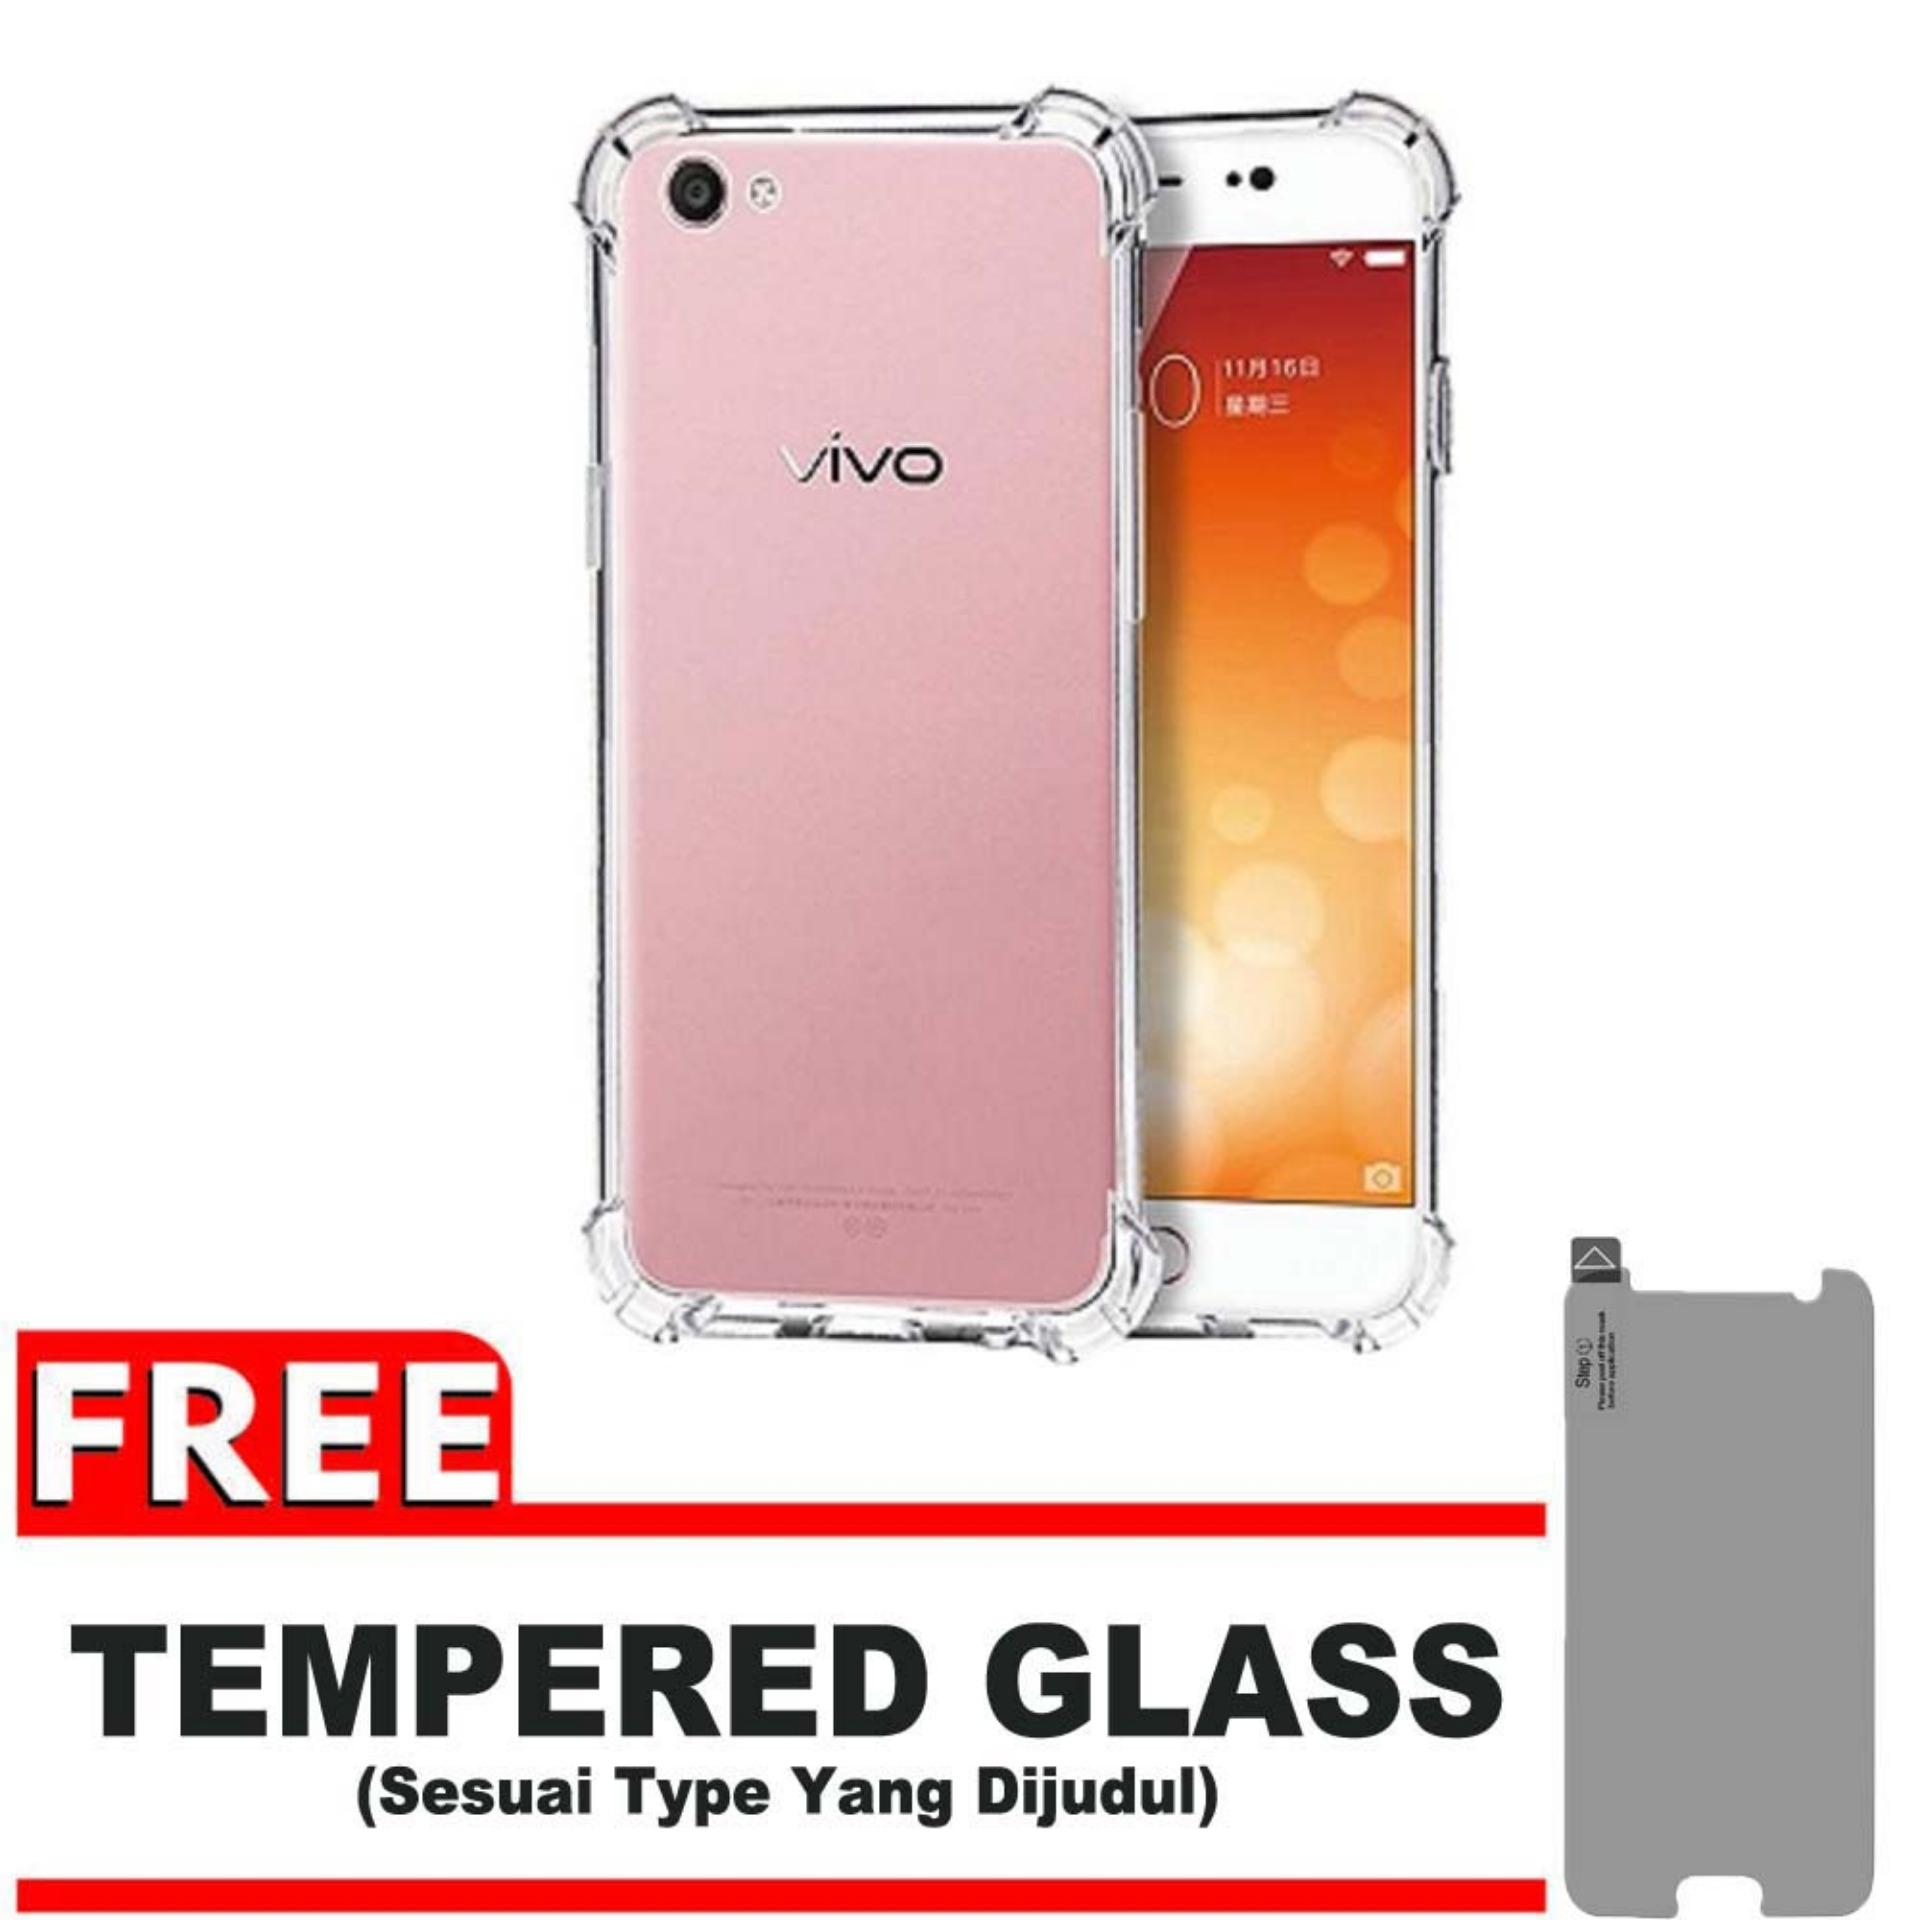 Rp 19.900 ShockCase for Vivo Y55 / Y55A / Y55L / Y55S | Premium Softcase Jelly Anti Crack Shockproof - Gratis Free Tempered Glass ...